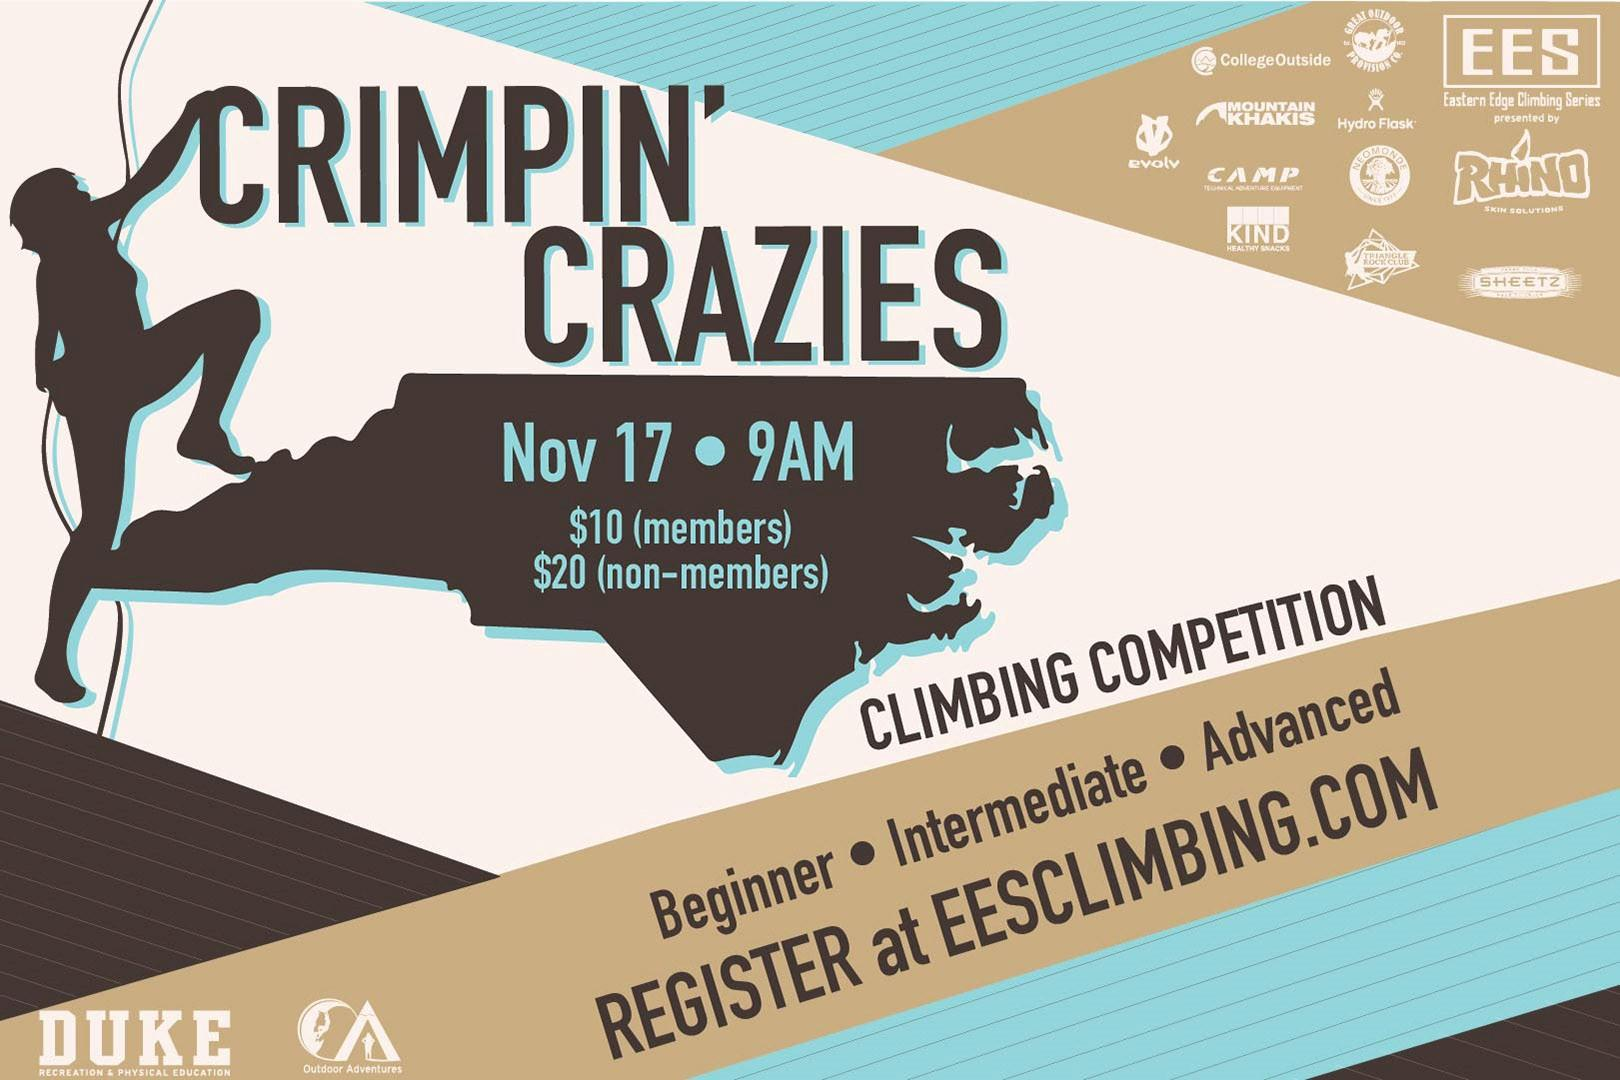 Duke Rec & PE Crimpin¿ Crazies Climbing Competition